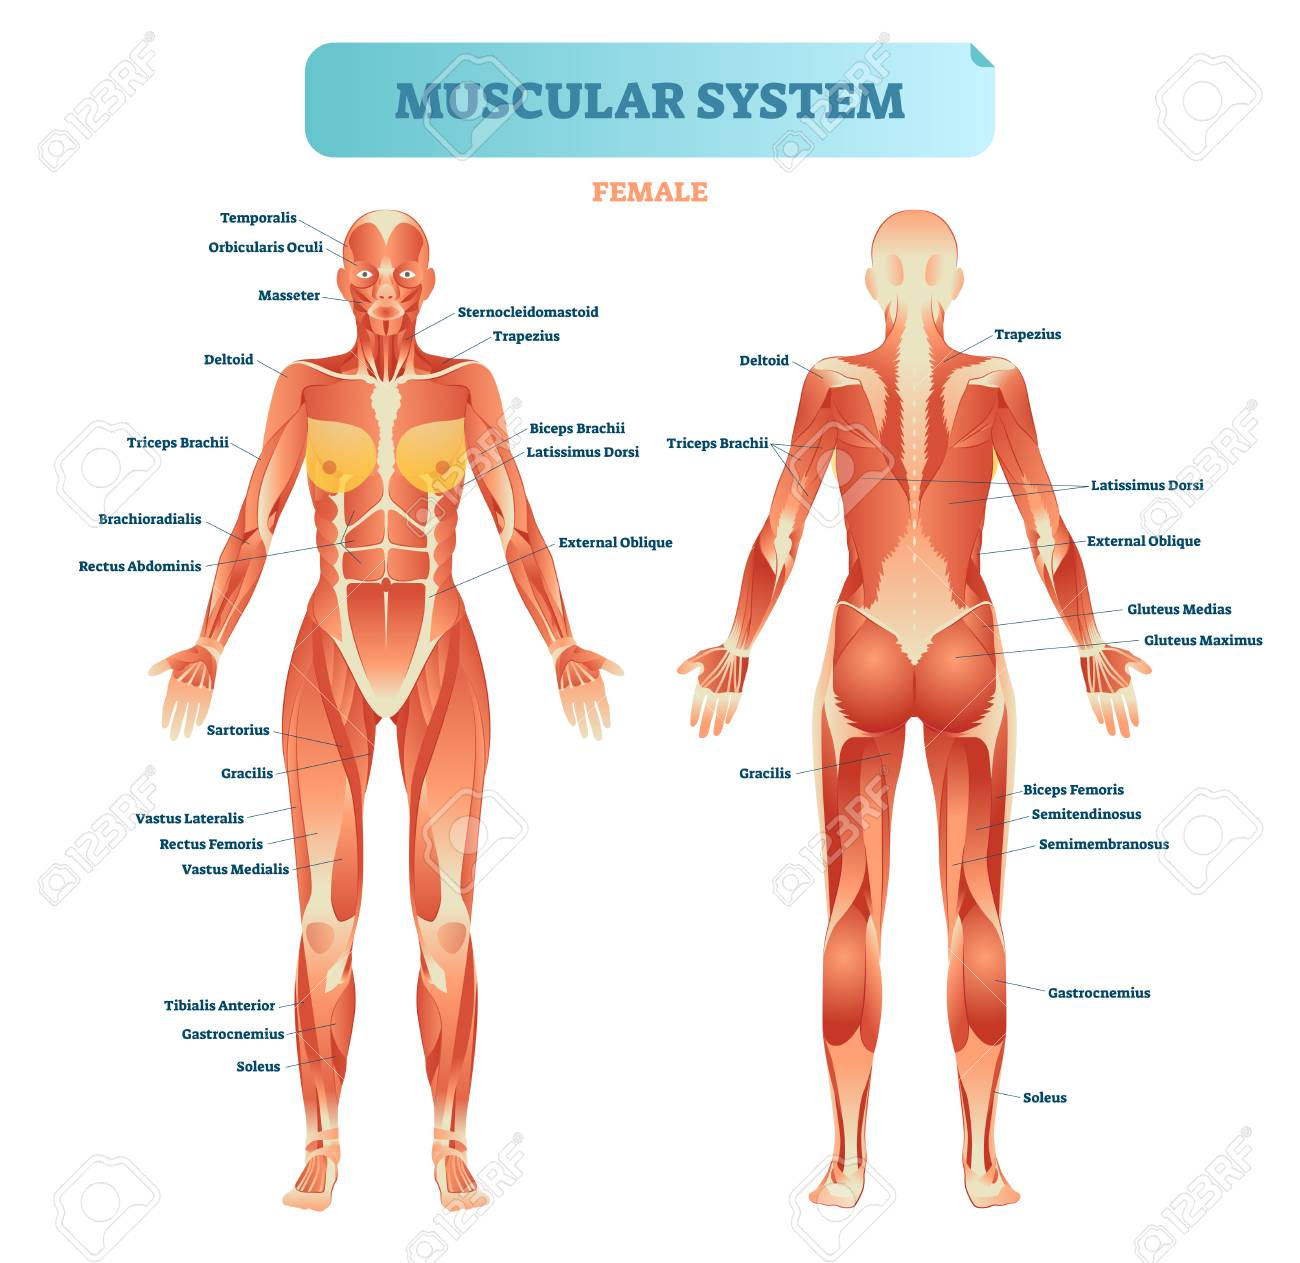 Female gluteus maximus muscle diagram schematic wiring diagram female muscular system full anatomical body diagram with muscle rh 123rf com thigh muscles diagram gluteus ccuart Images